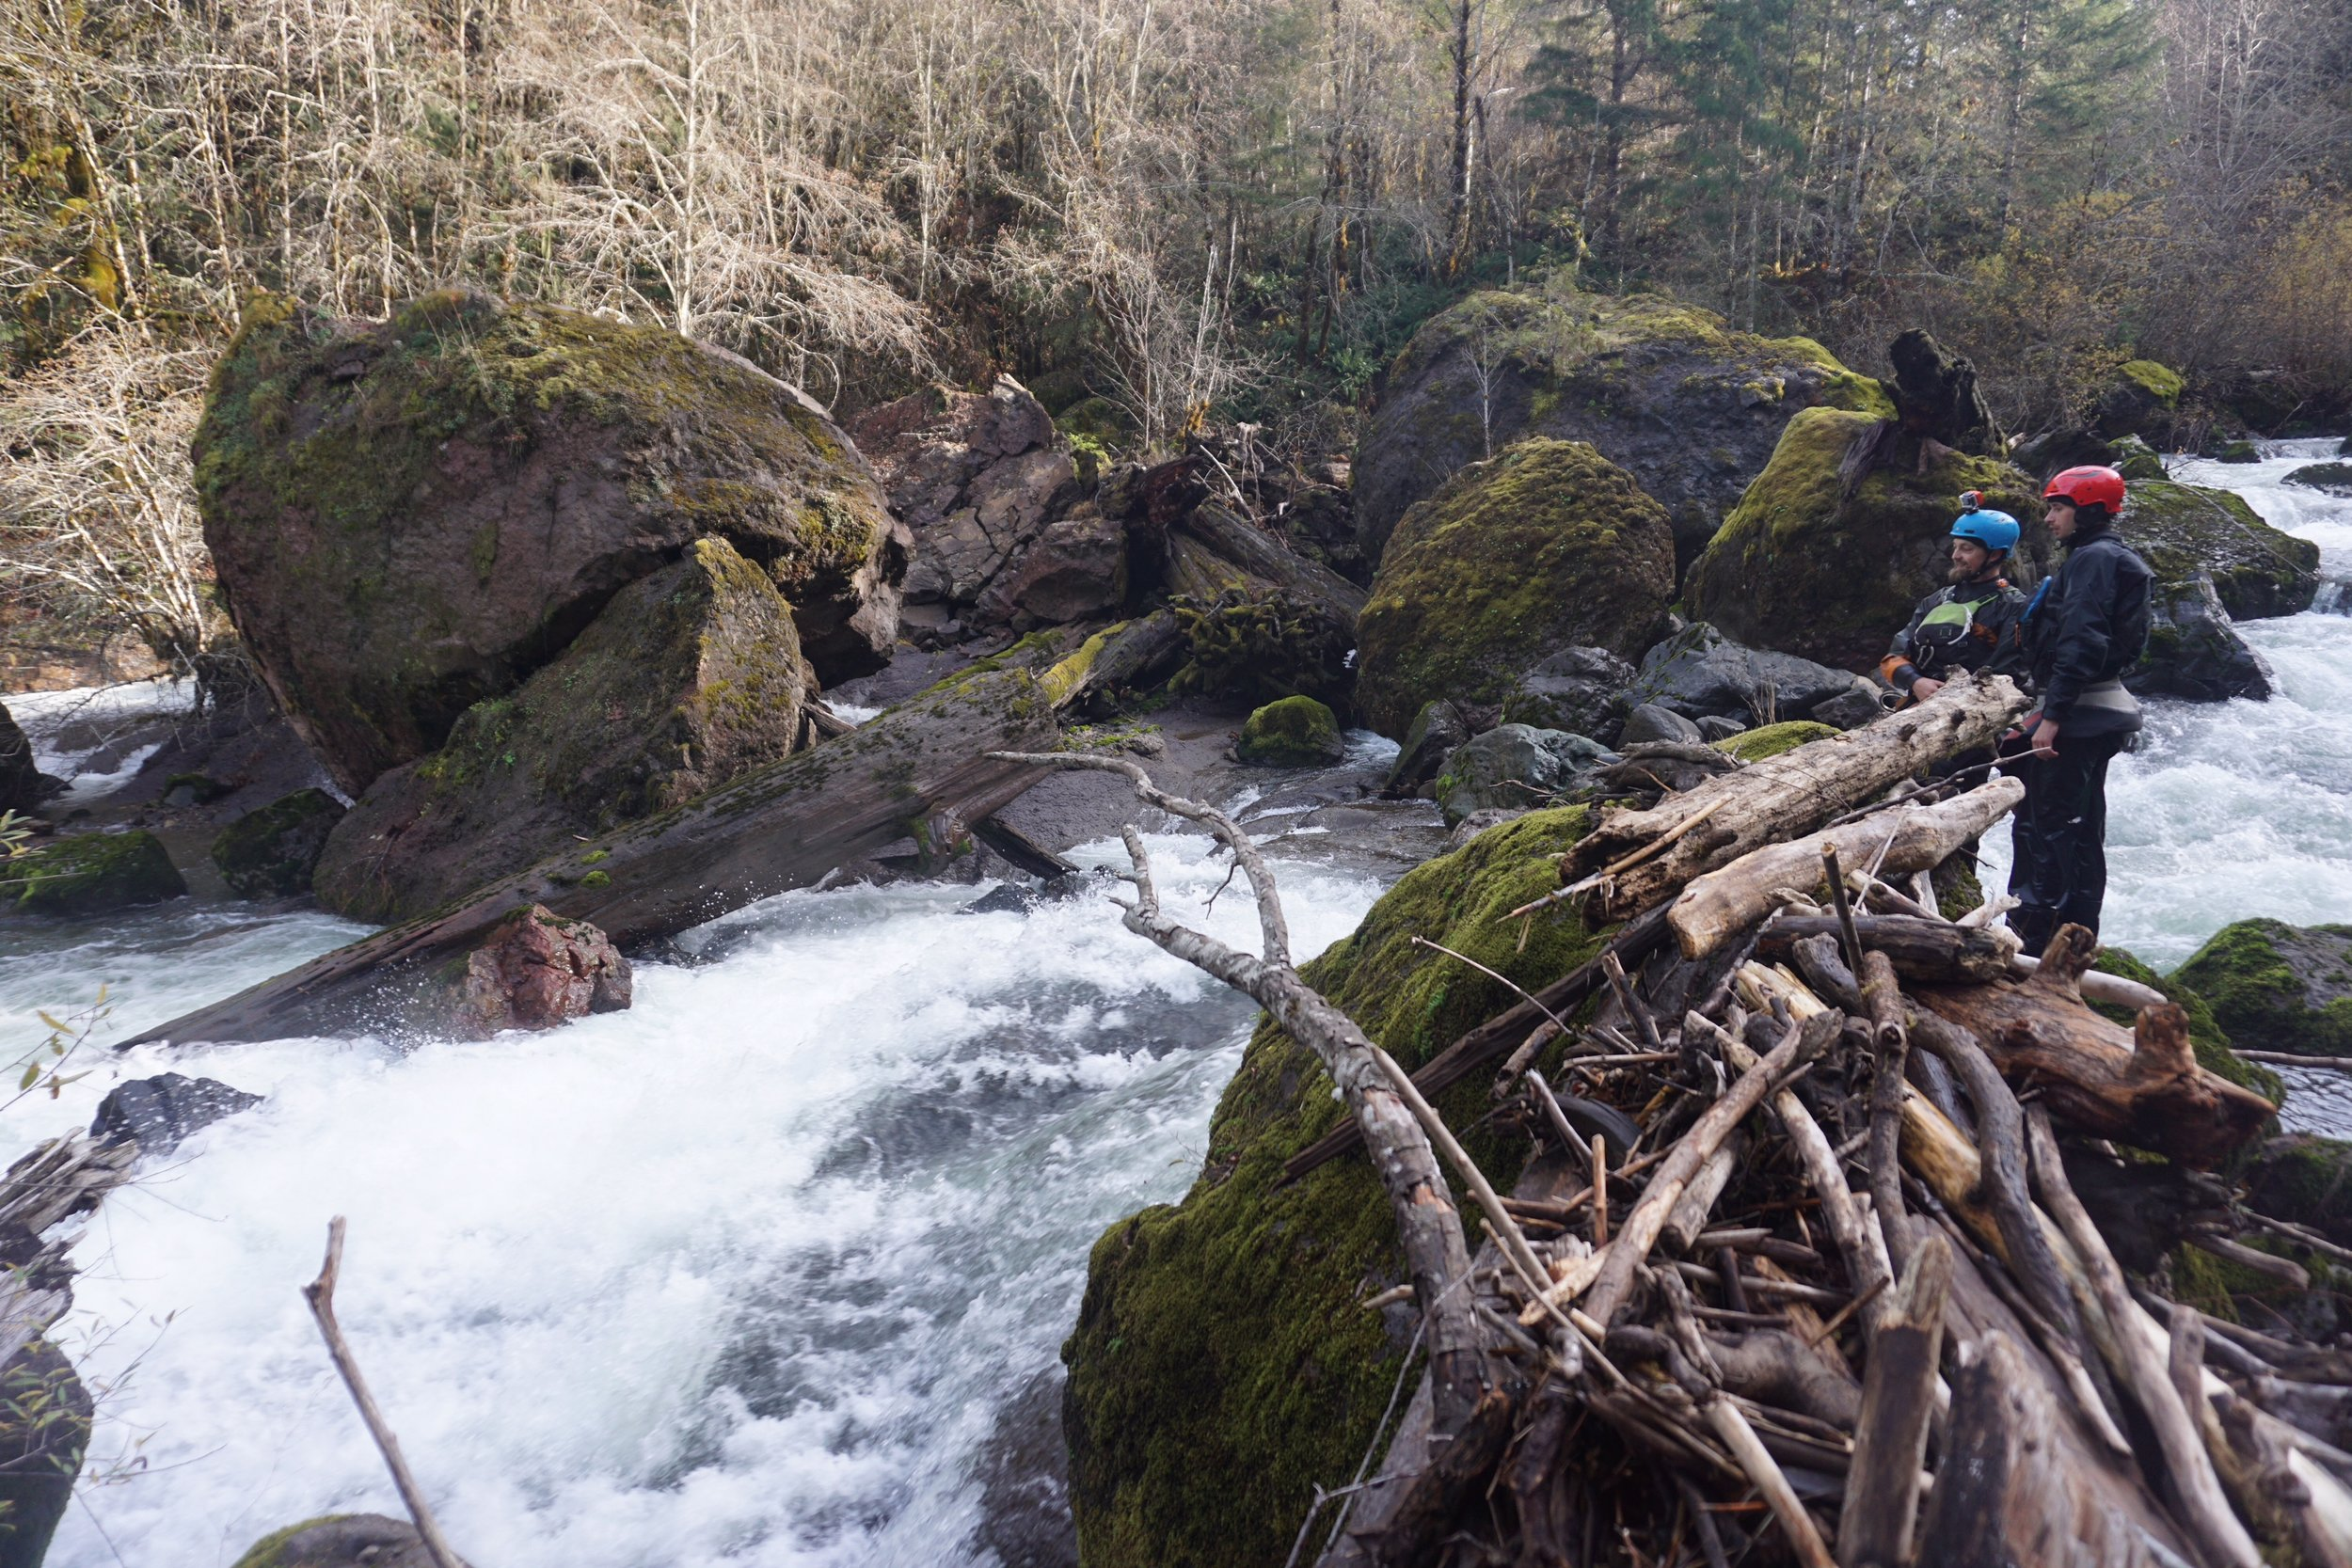 Scouting a rapid in Canyon Creek, Oregon. Photo courtesy of Adam Edwards.